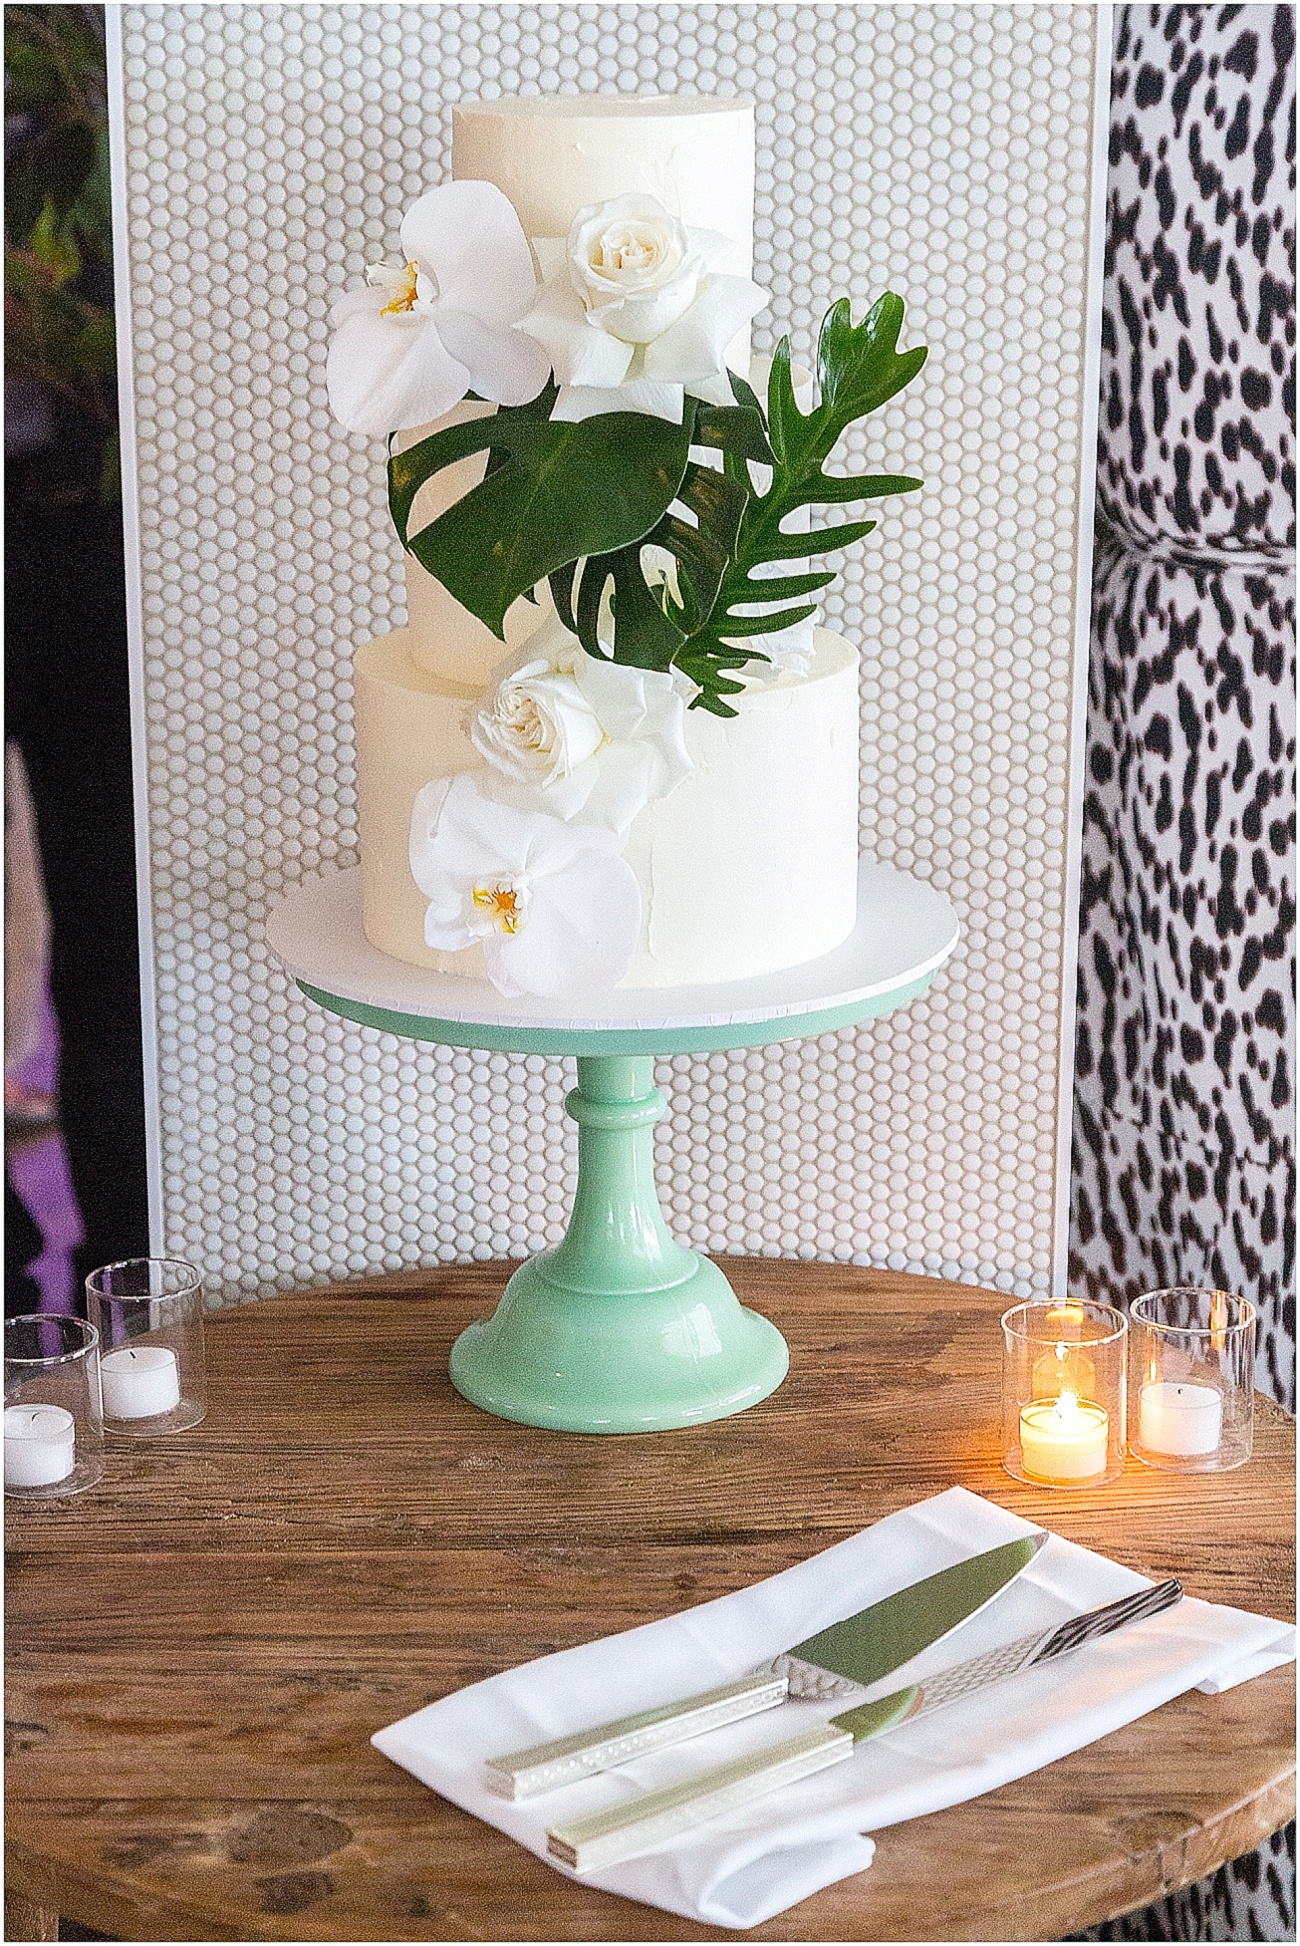 Wedding cake featuring orchids roses and tropical leaves